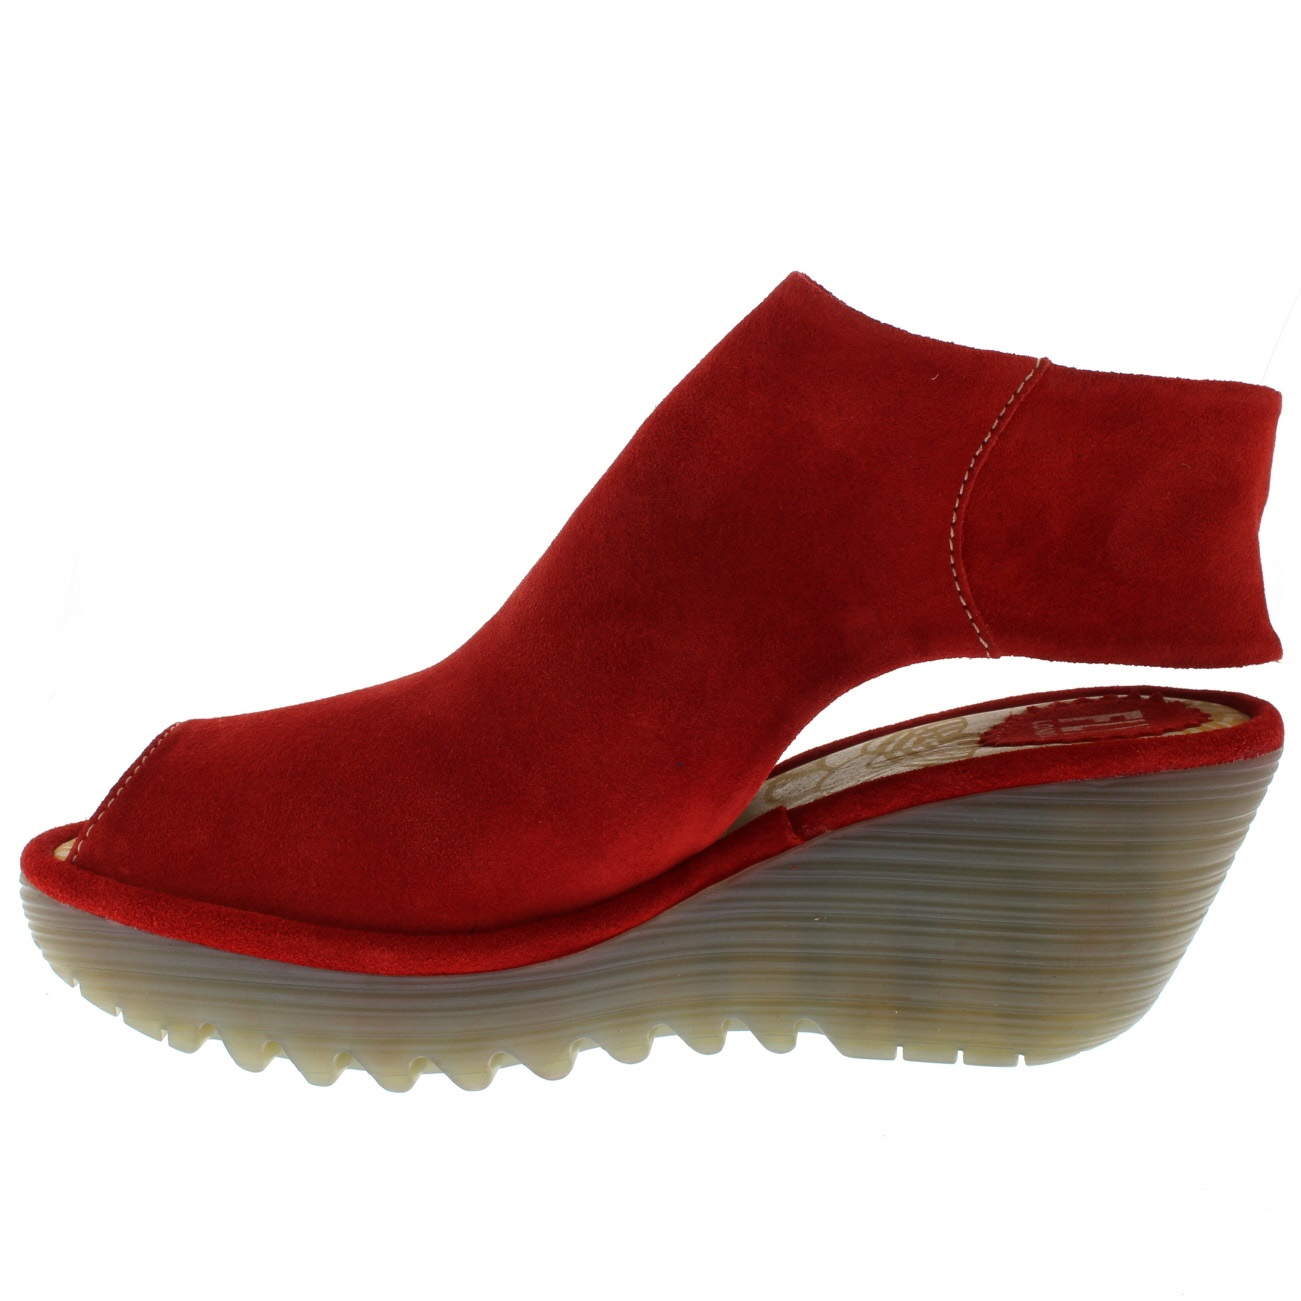 donna Fly London Yone Peep Toe Suede Suede Suede Holiday scarpe Summer Wedge Heels US 5-11 415160